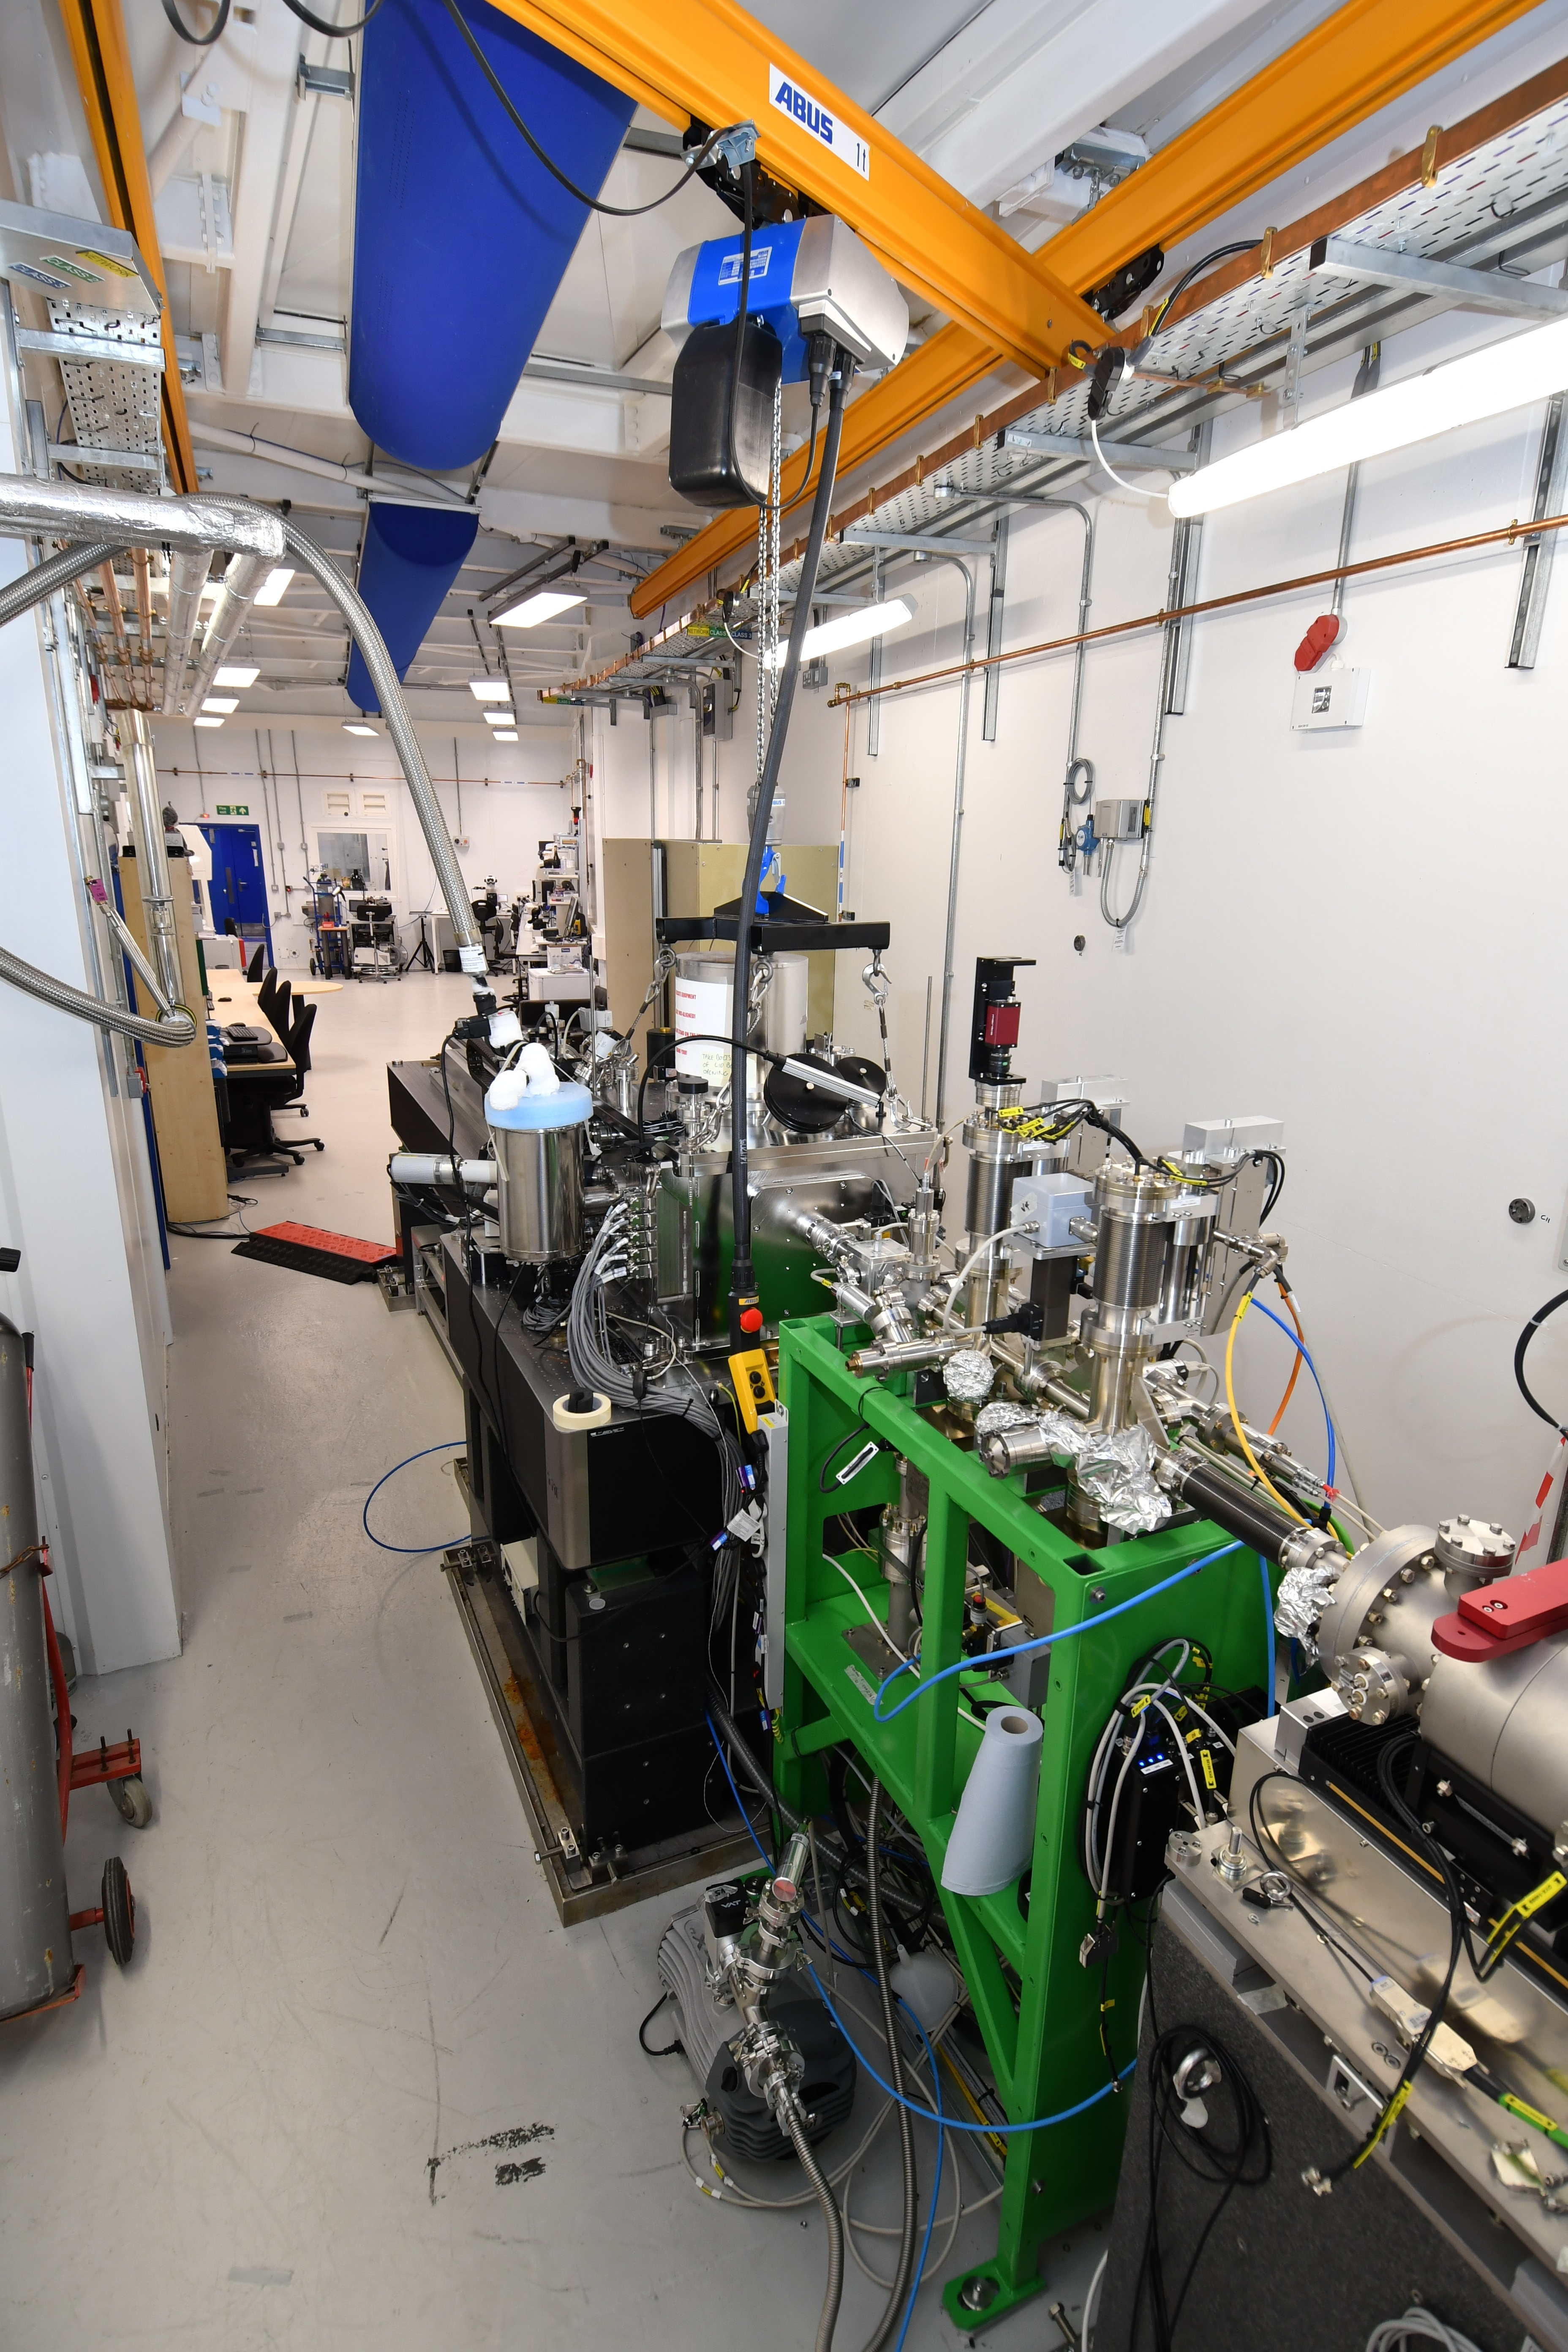 Microscopy beamline B24 at Diamond Light Source. Copyright of Diamond Light Source Ltd.